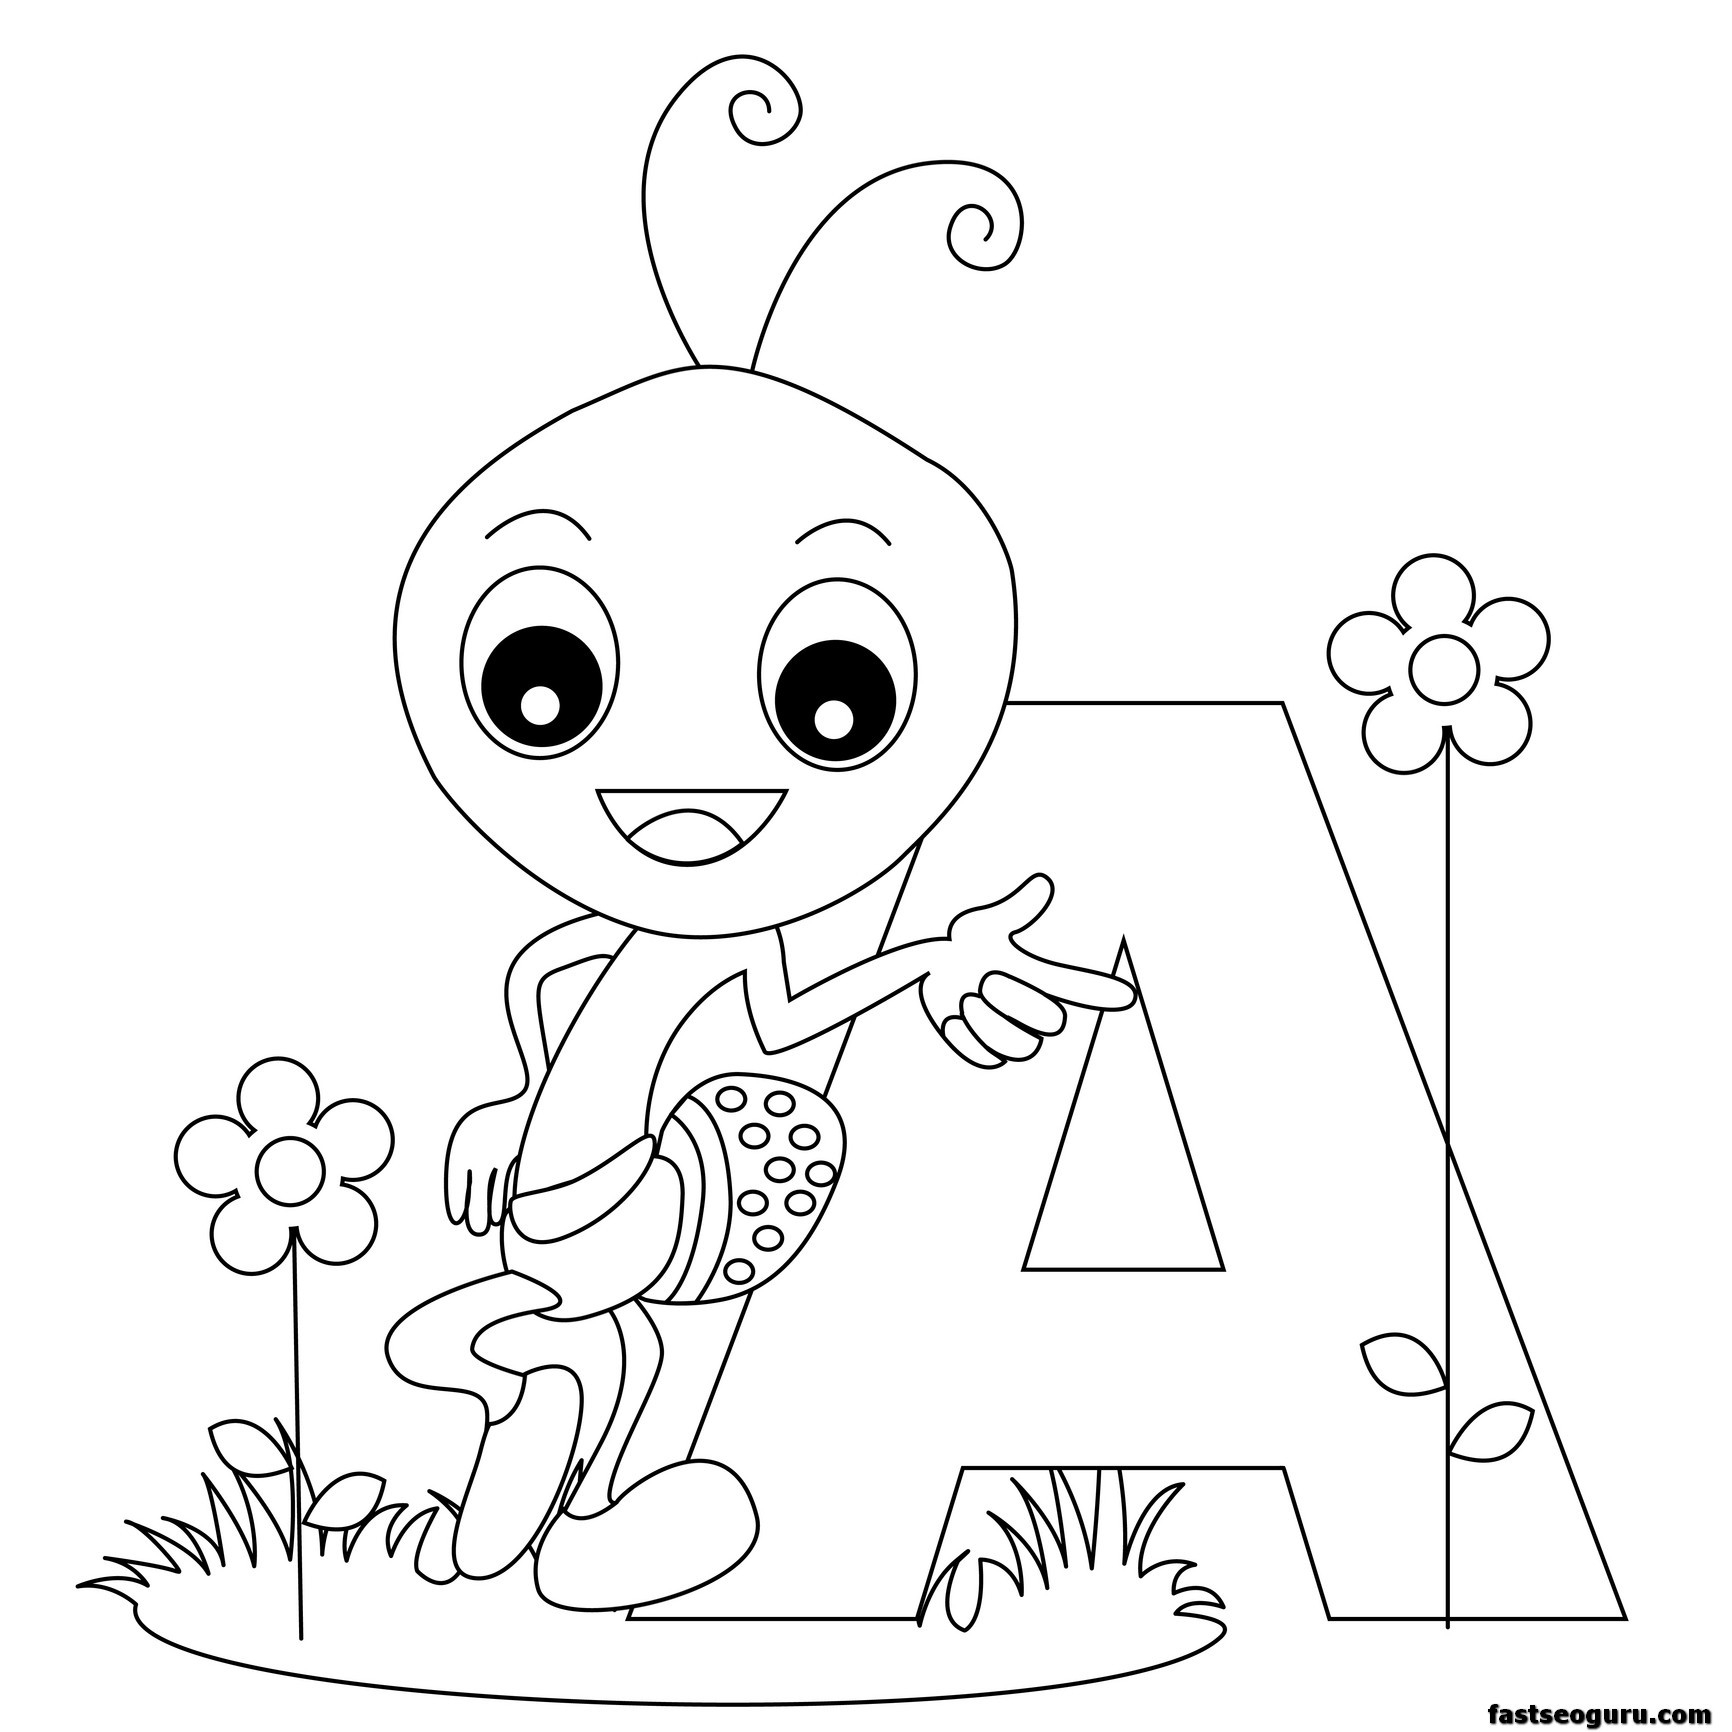 Letter Printable Coloring Pages At Getdrawings